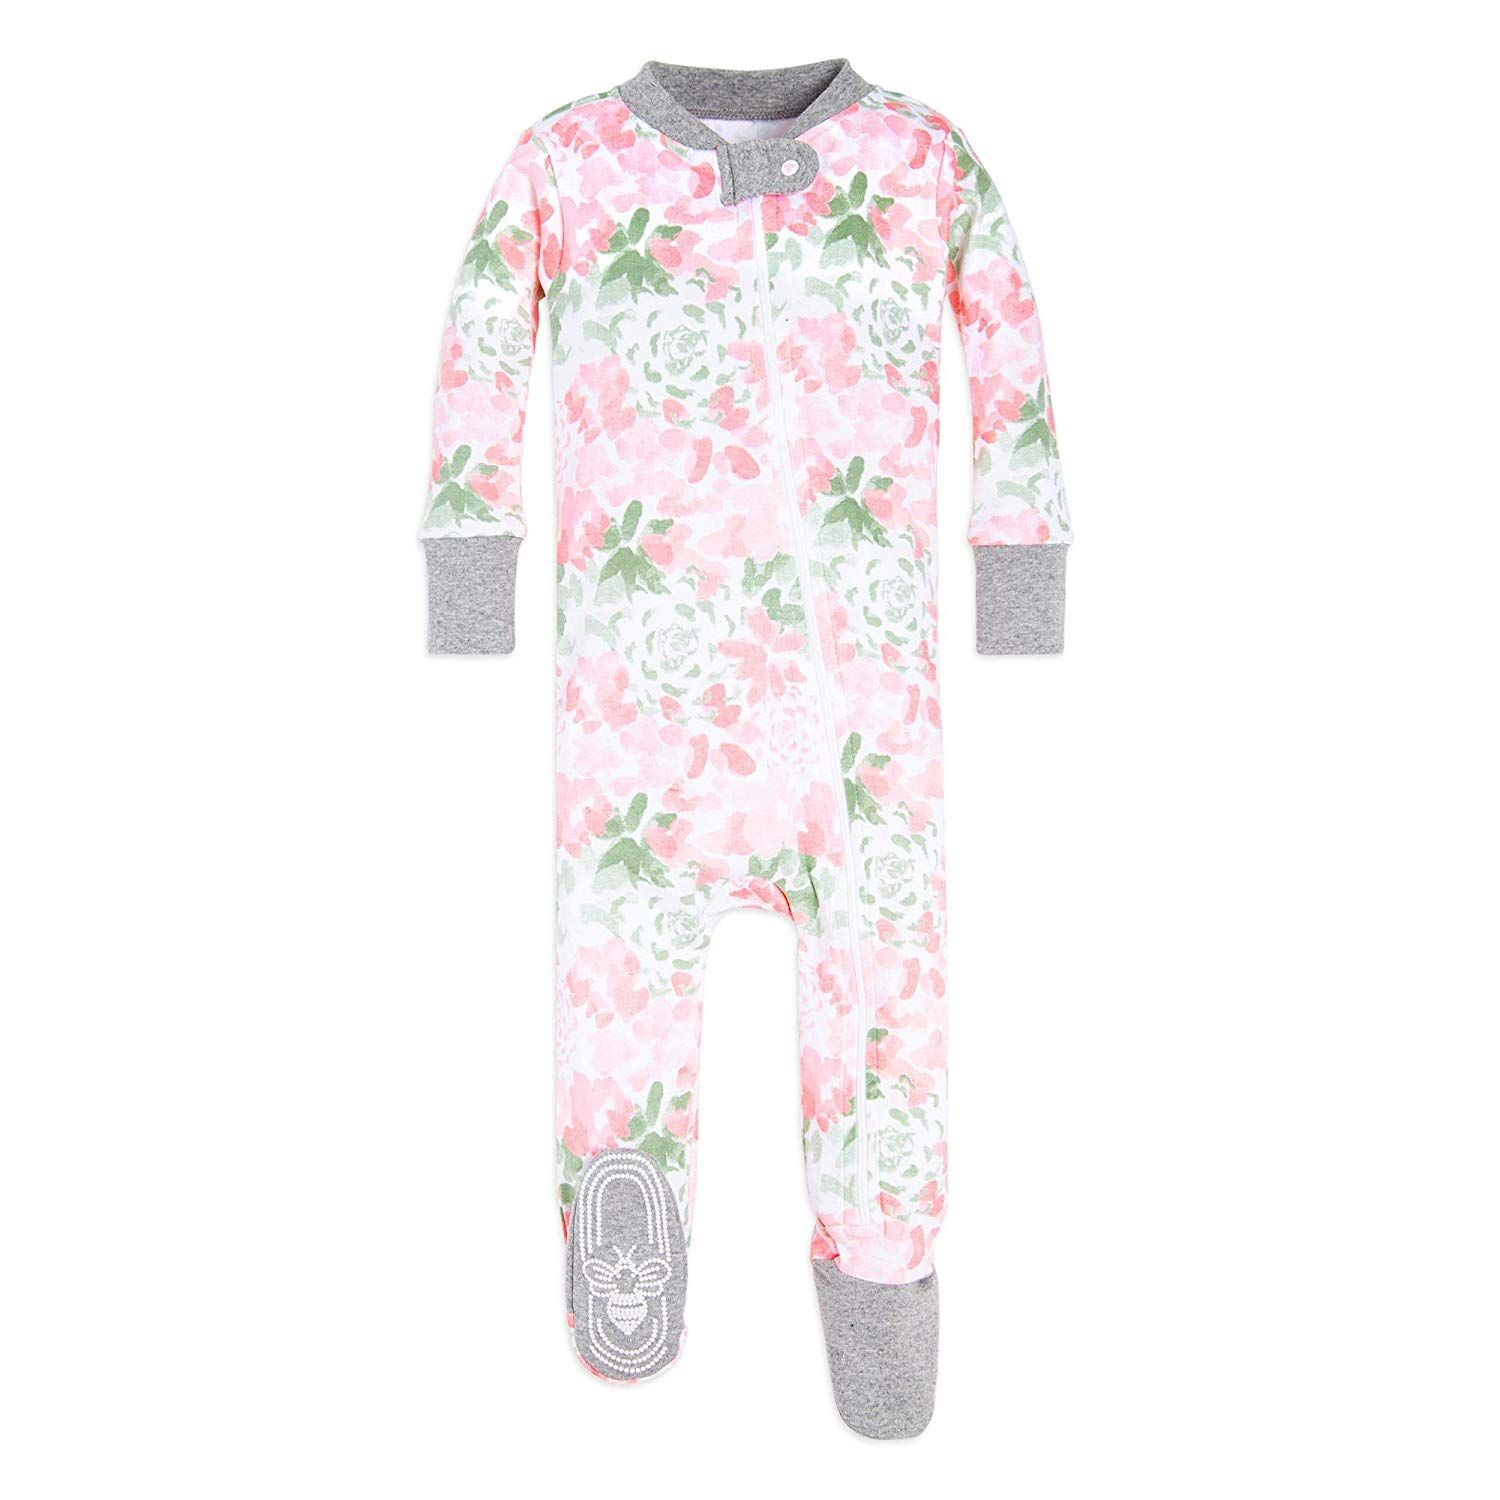 bb47cac78 Amazon.com  Burt s Bees Baby - Baby Girls  Sleeper Pajamas